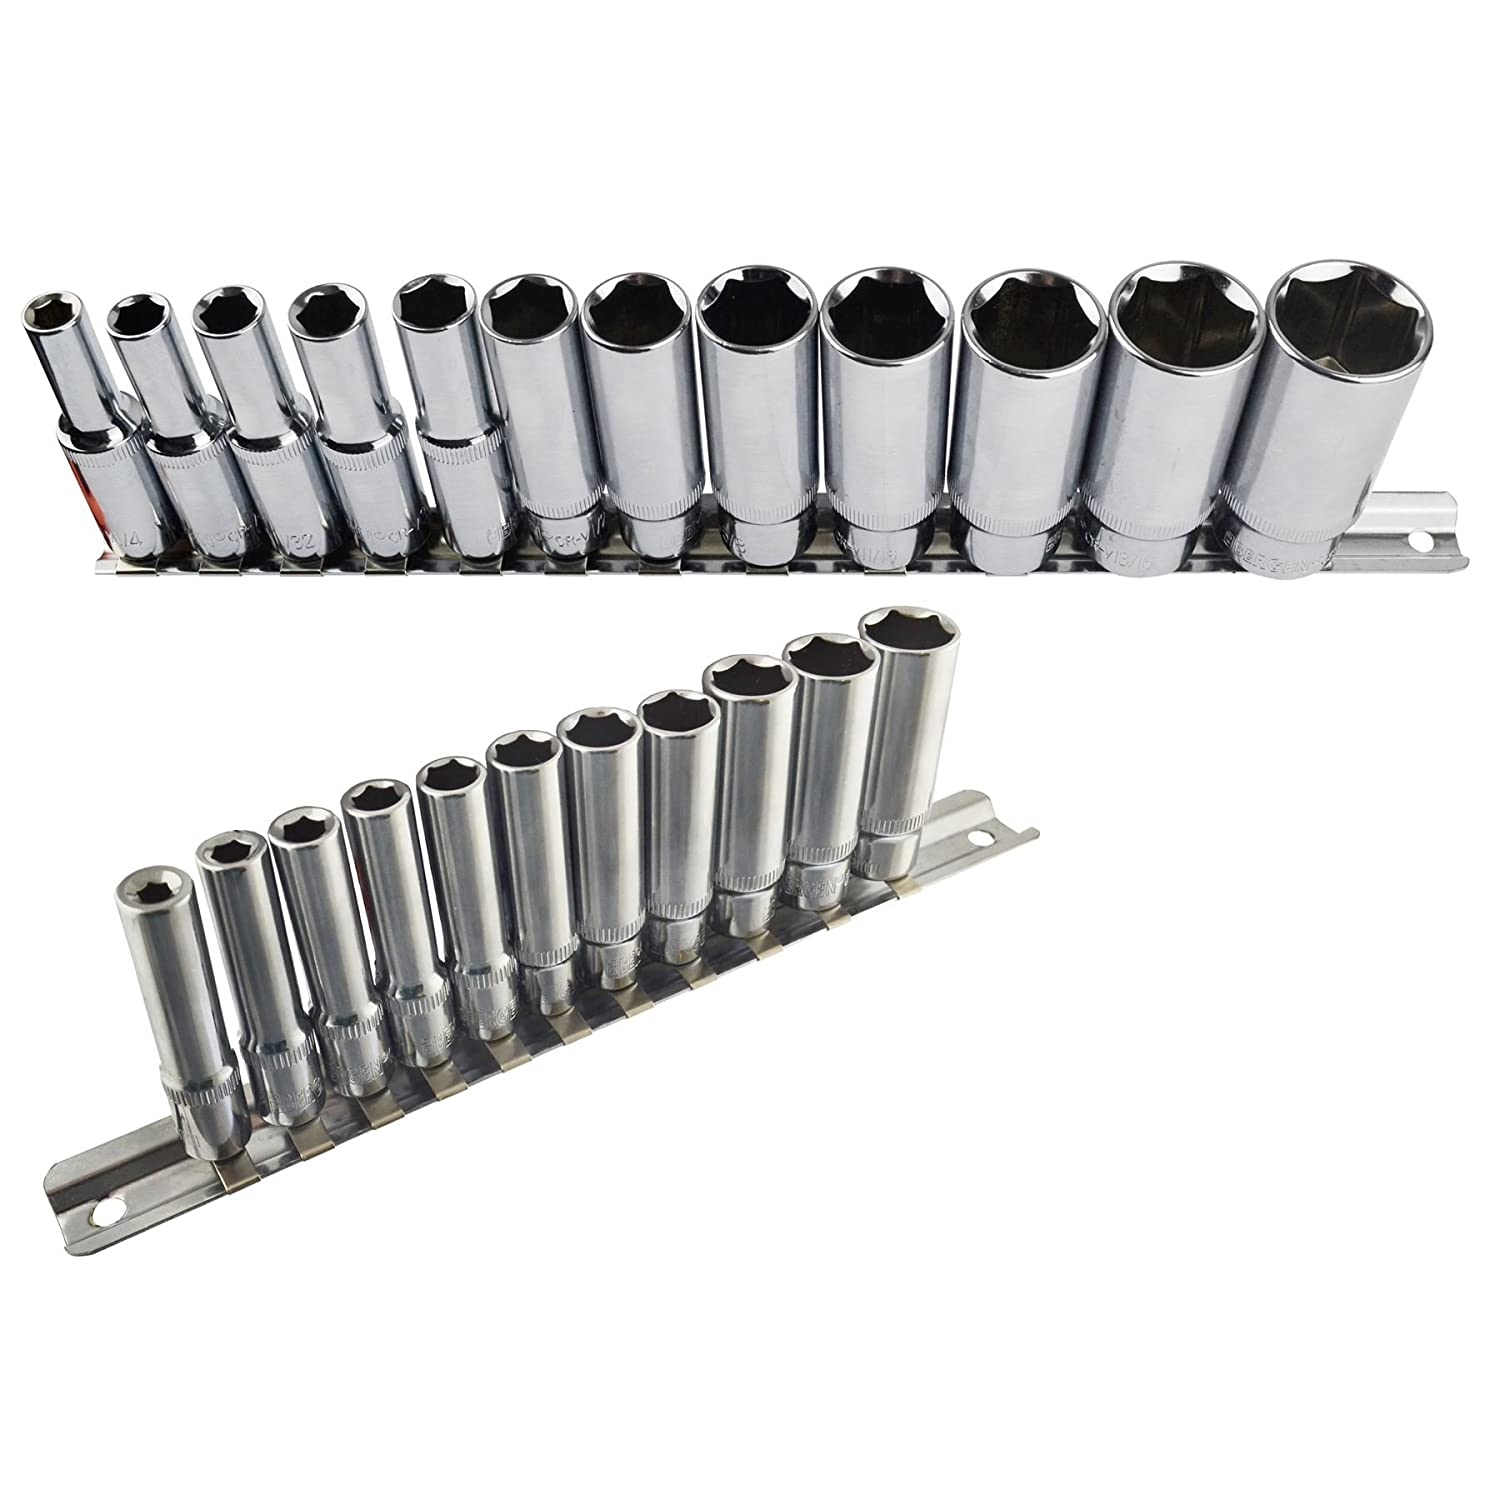 Imperial SAE / AF Double Deep Sockets 1/4' And 3/8' Drive 5/32' - 7/8' 23pc Set AB Tools